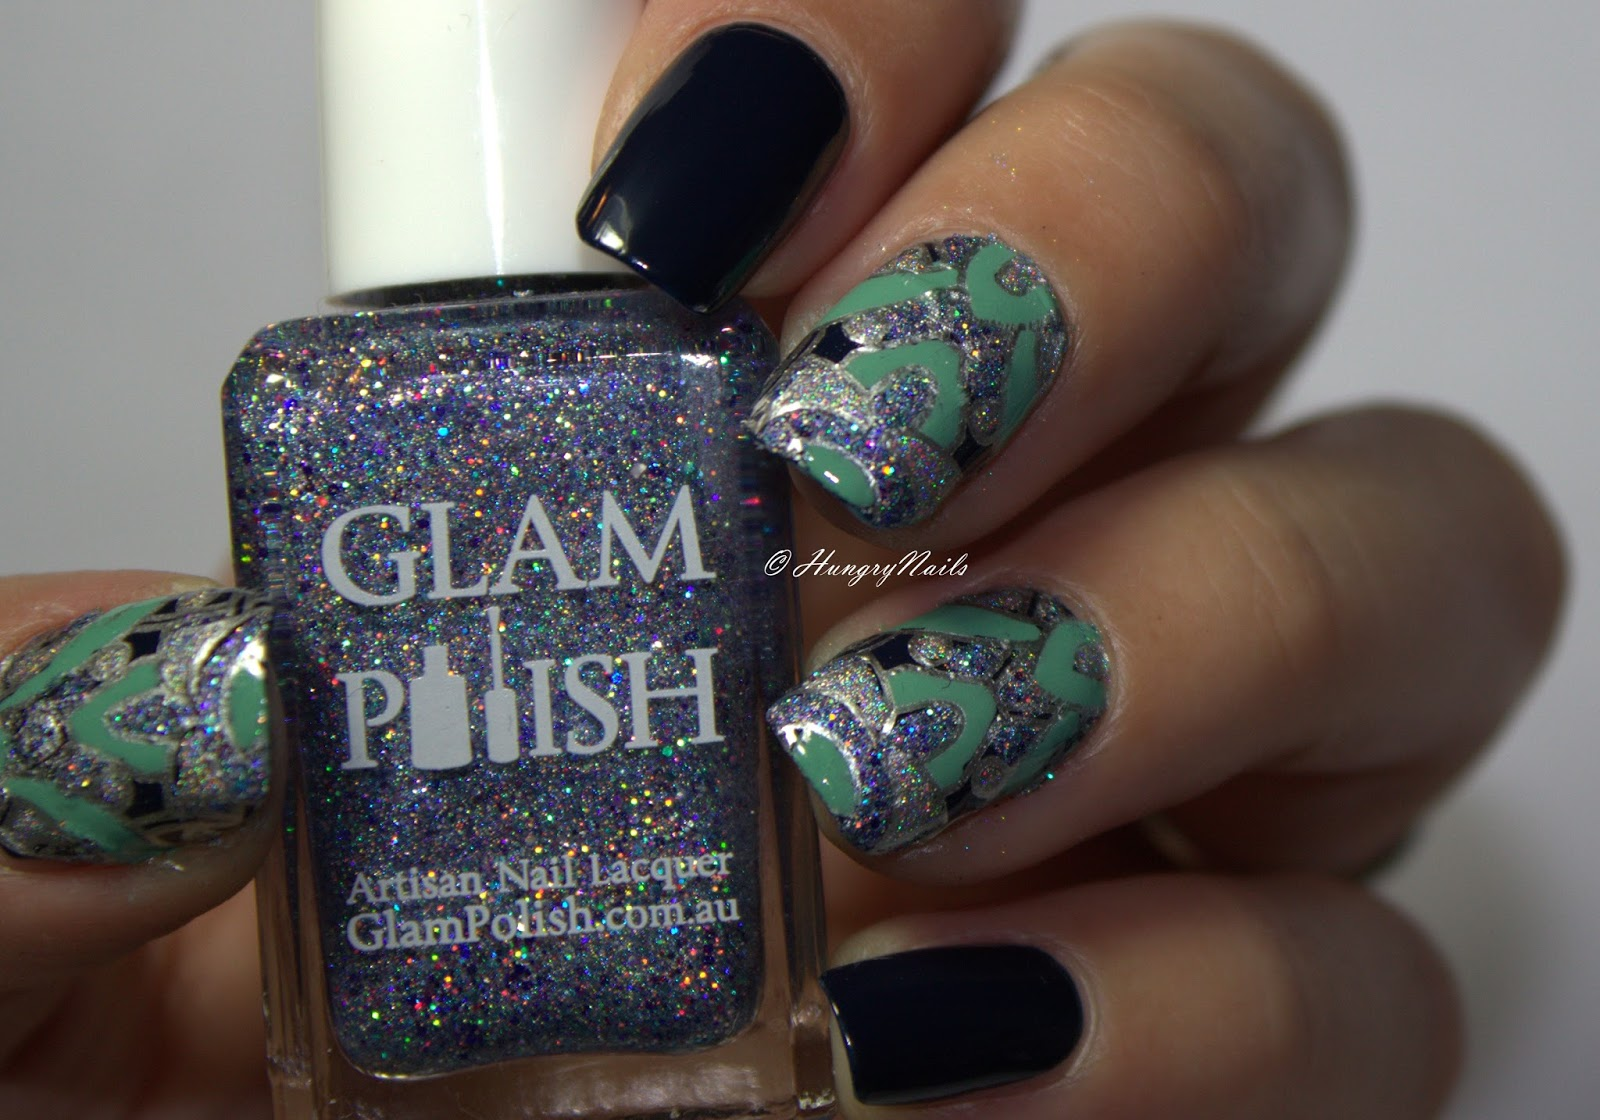 http://hungrynails.blogspot.de/2016/10/blue-friday-spezial-reverse-stamping.html